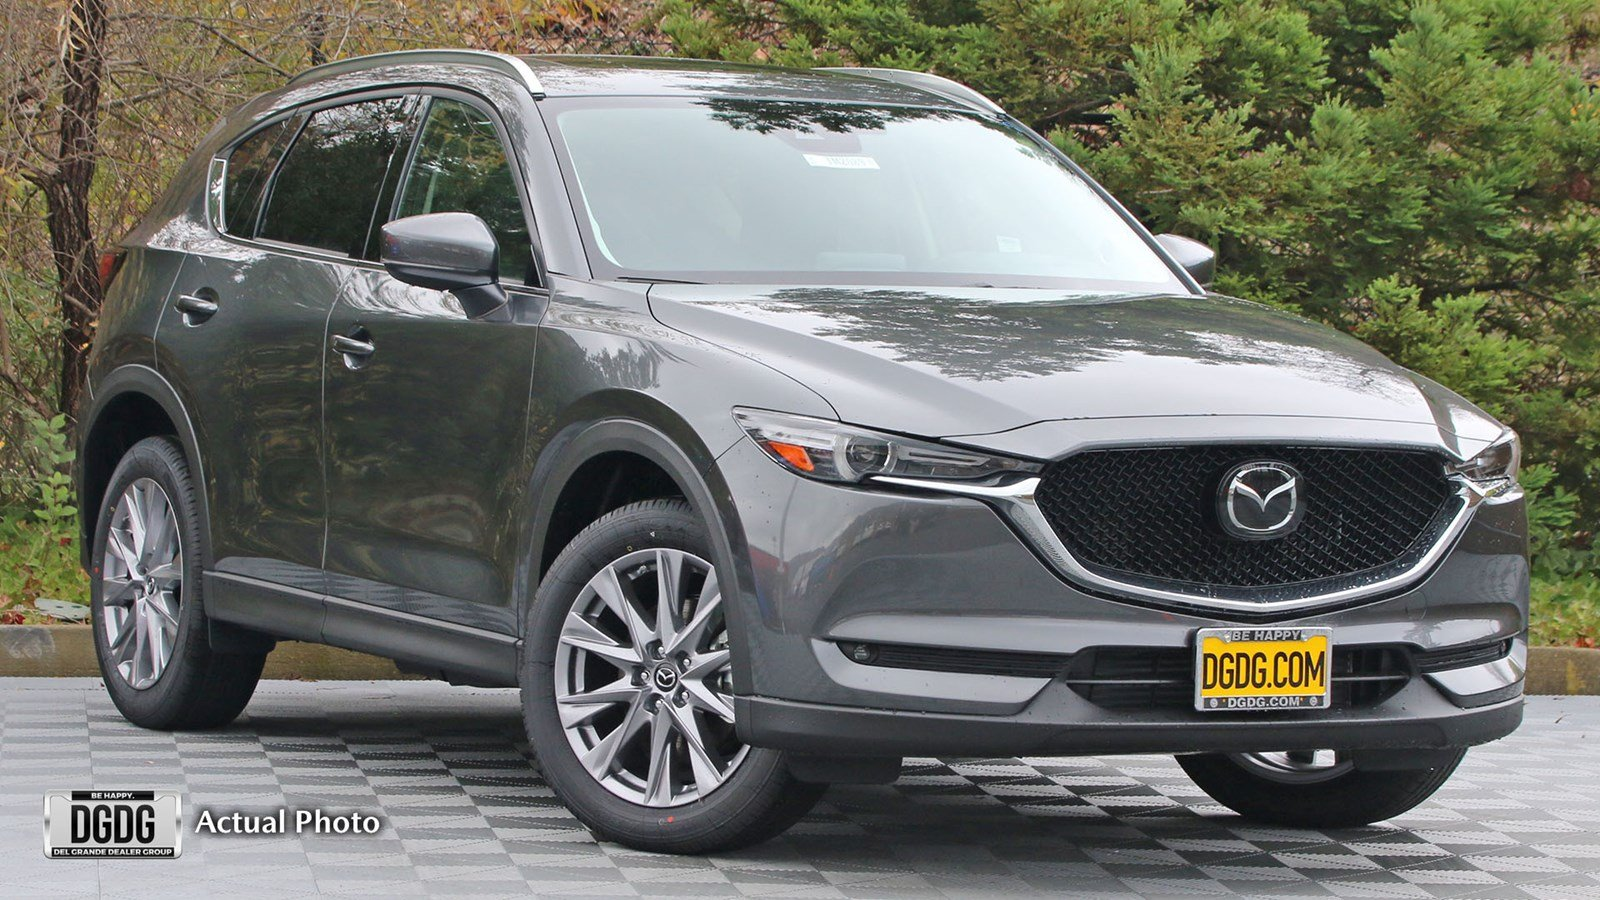 All 2019 CX-3, CX-5, MX-5 and MX-5 RF